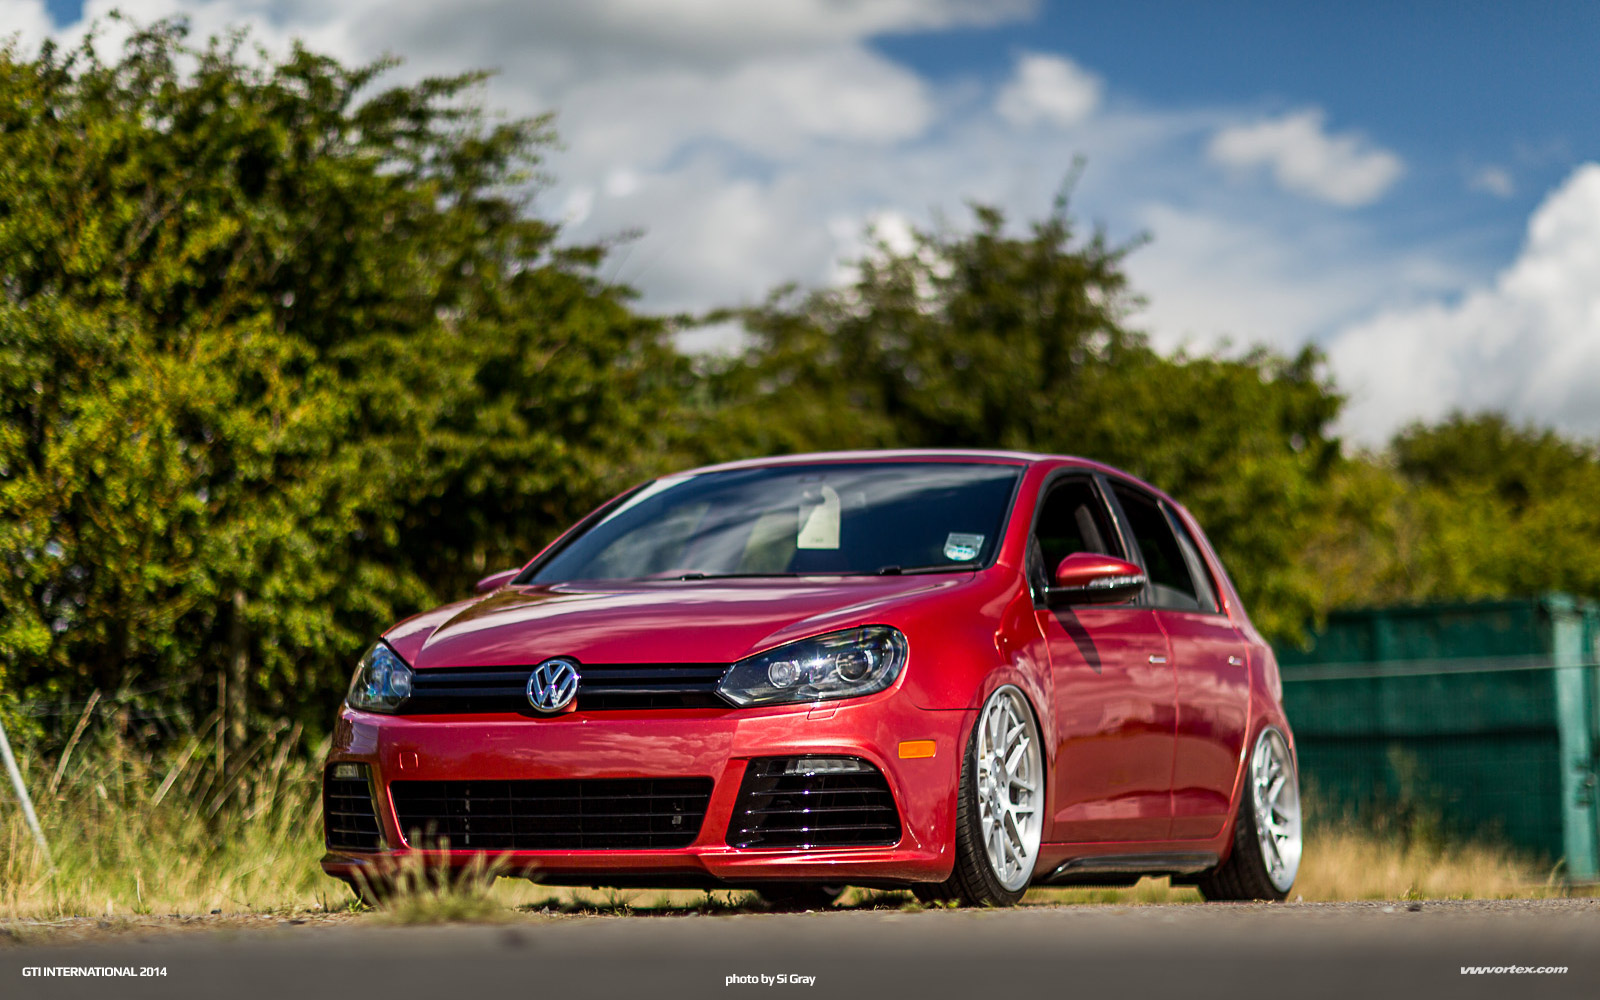 Si-Gray-GTI-International-2014-608